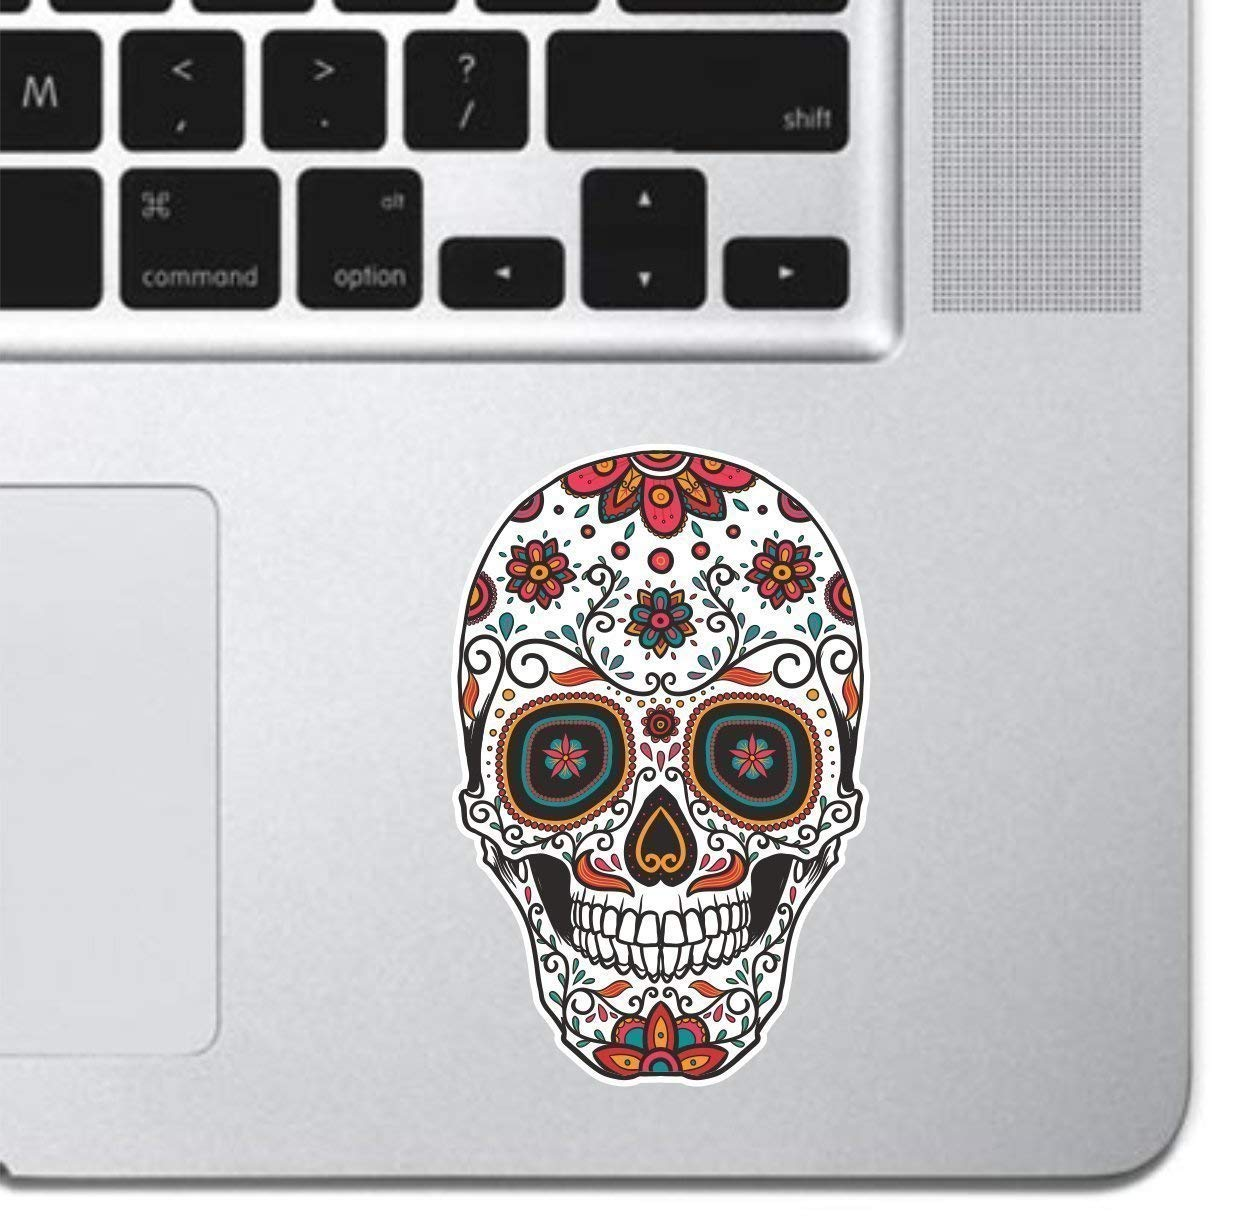 Ornamental Sugar Skull Keyboard, Keypad Vinyl Macbook Decal Sticker - Skin Track Pad MacBook Pro Air 13 15 17 iPad Laptop Decal Sticker iPad Sticker Skull Sticker Day Of the Dead